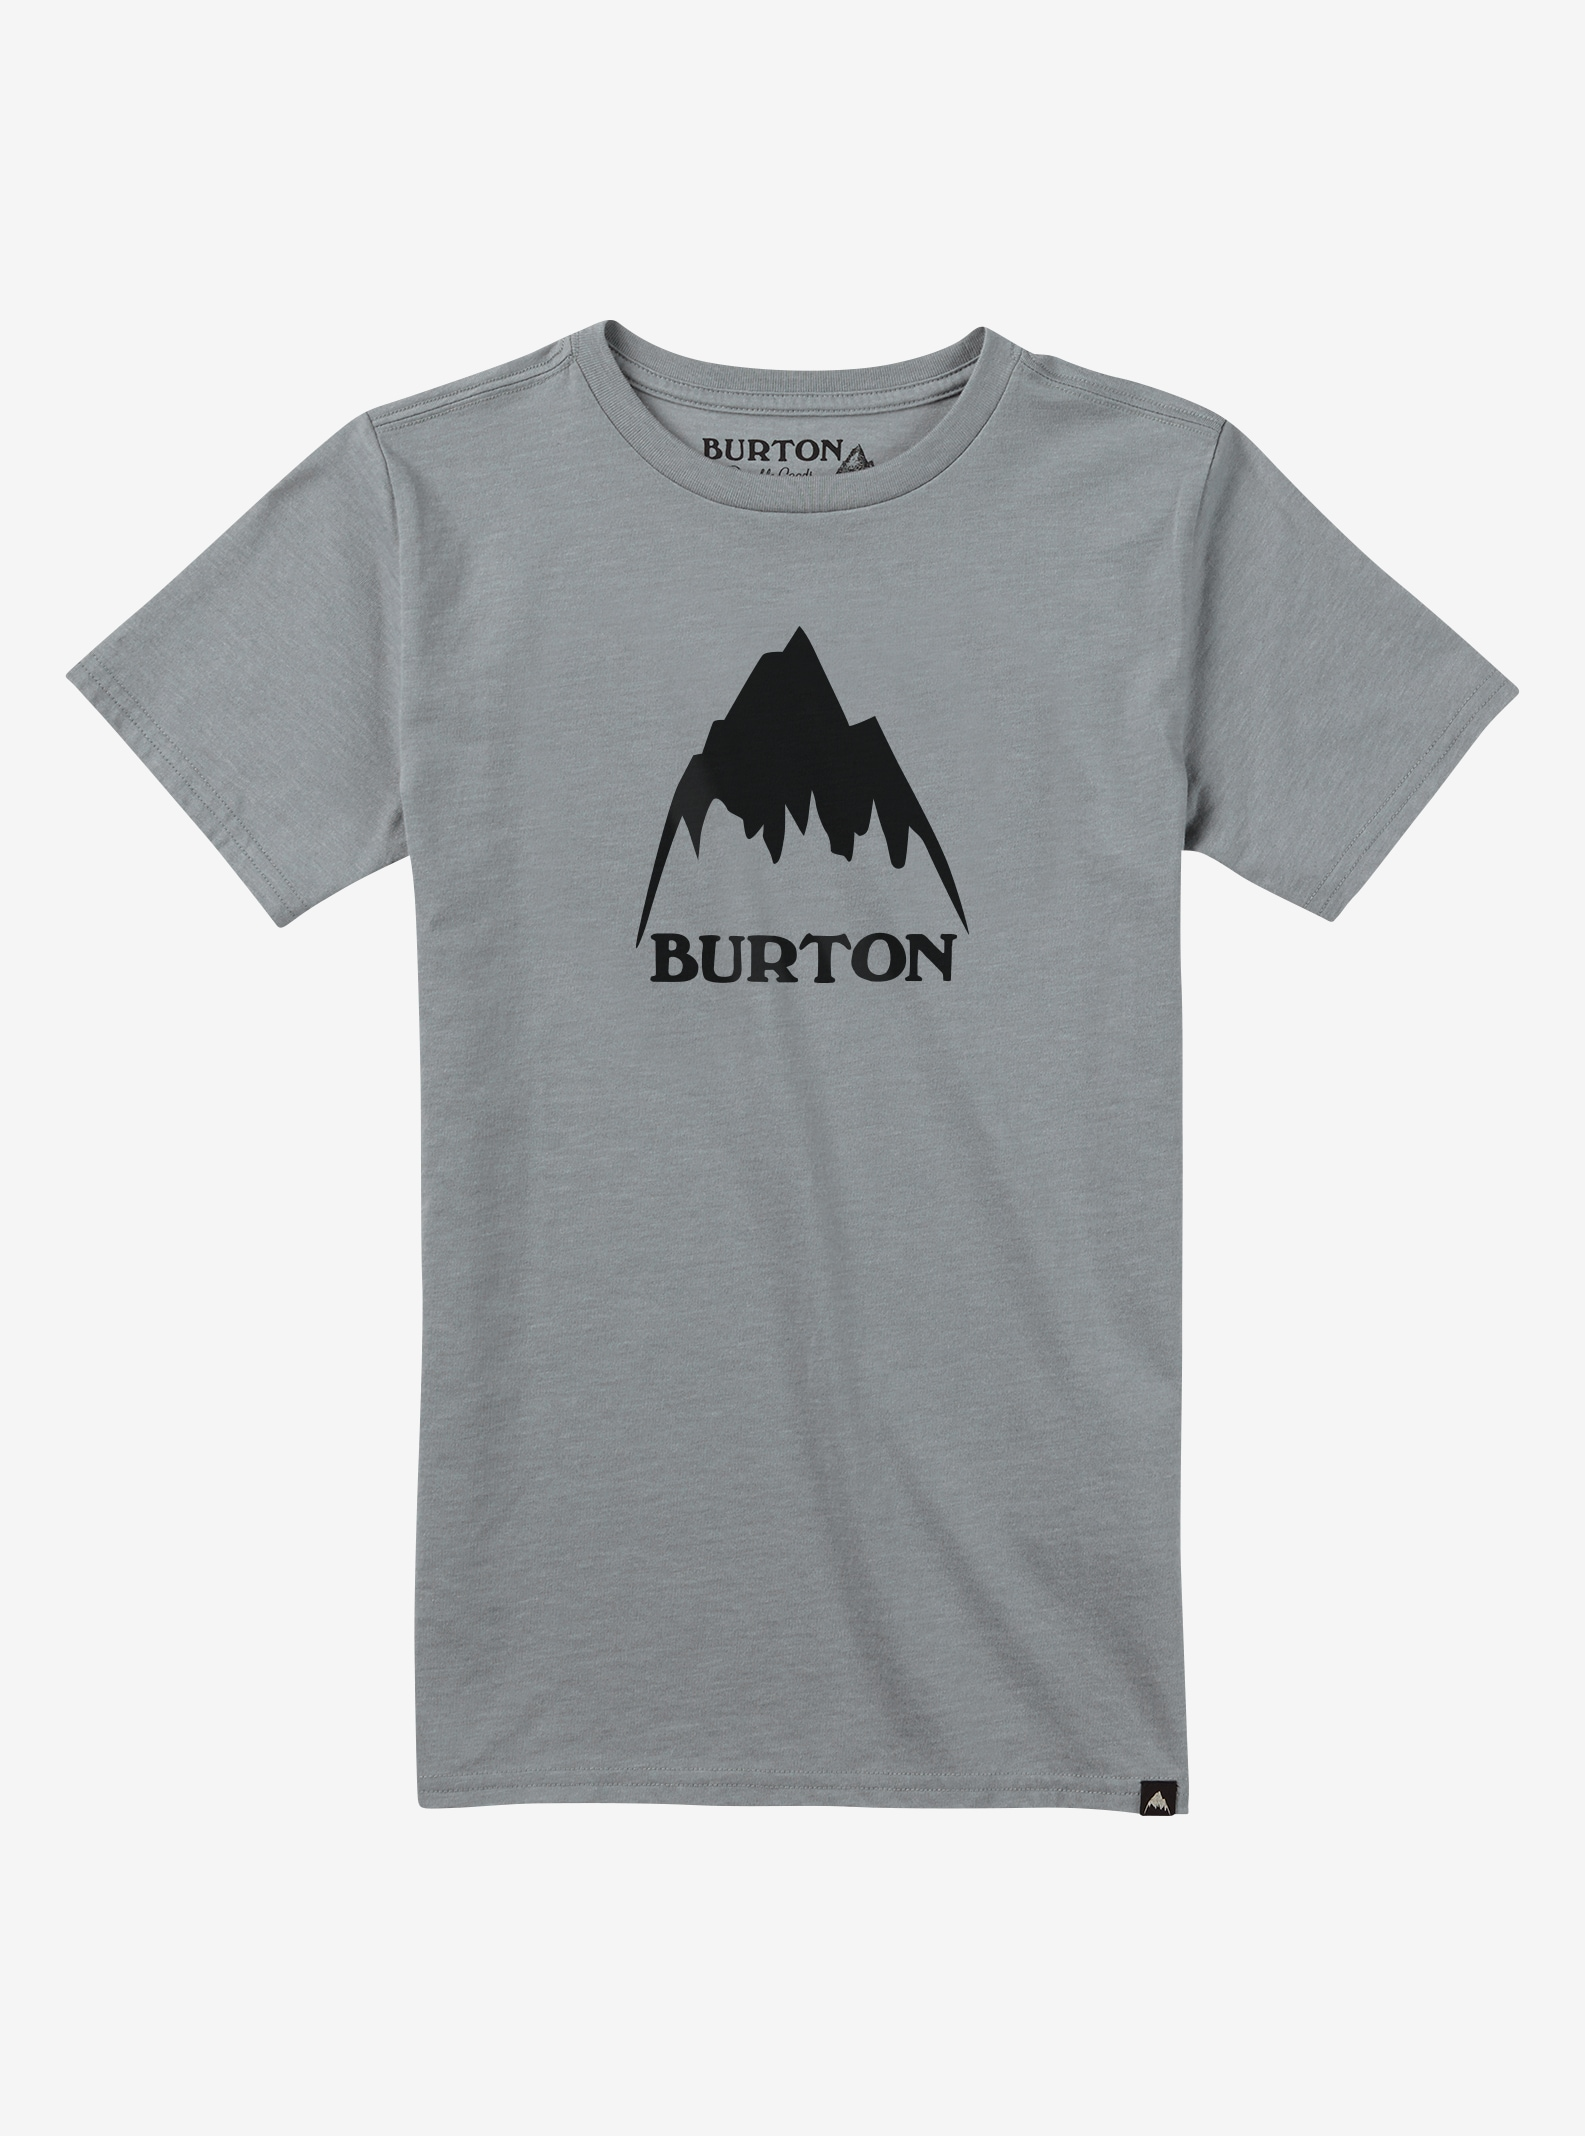 Burton - T-shirt à manches courtes Classic Mountain High garçon affichage en Gray Heather